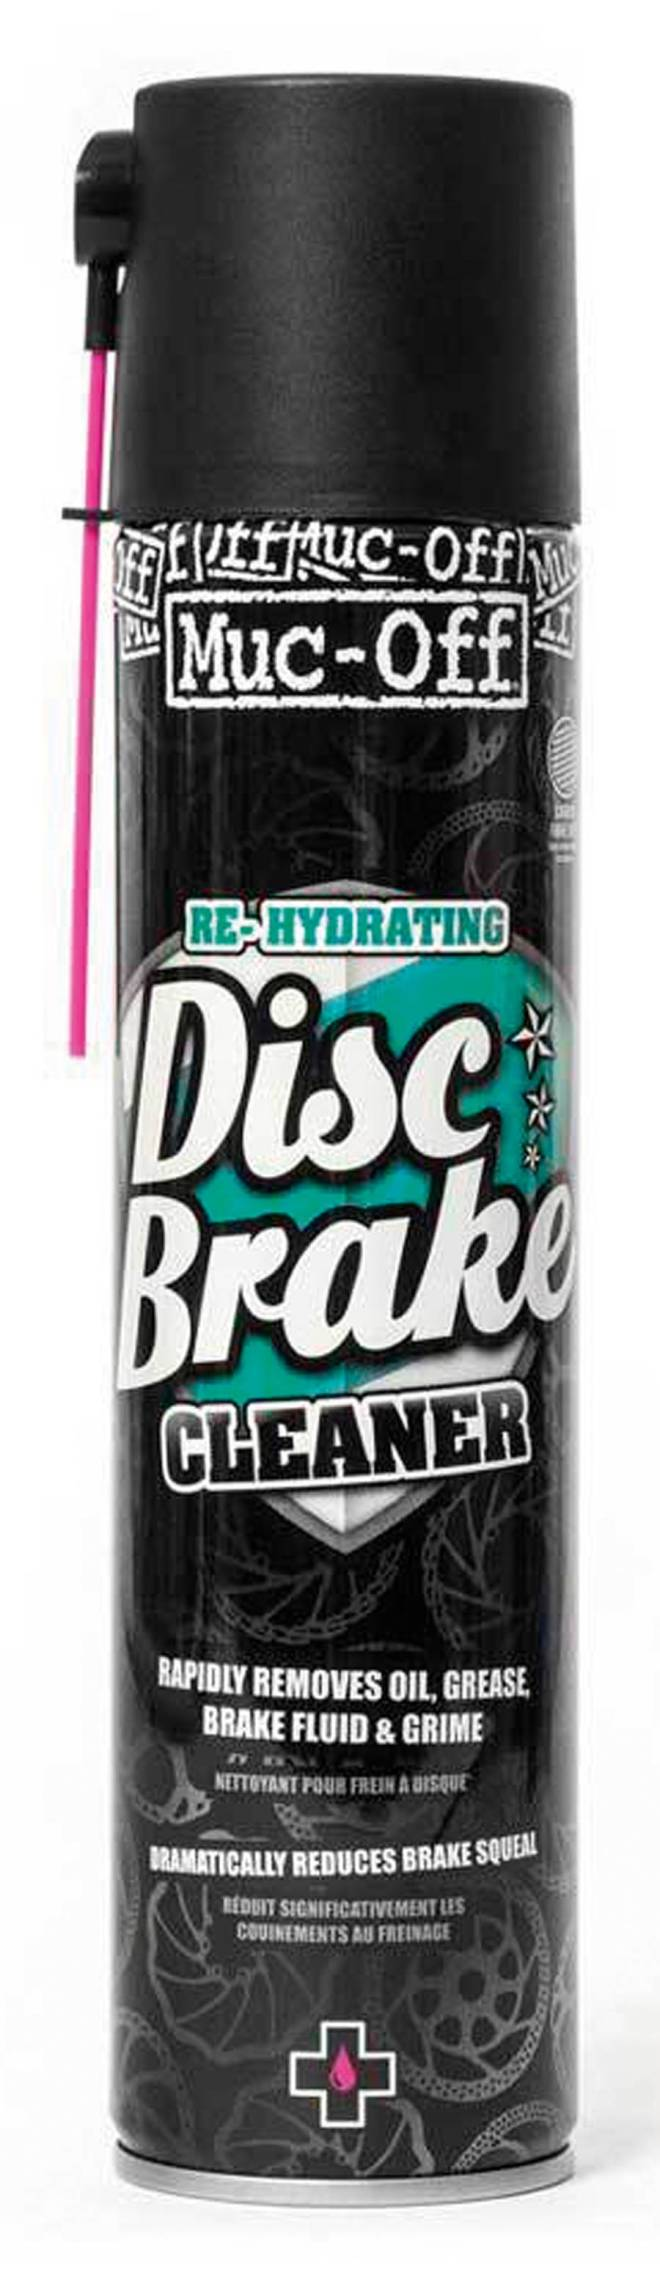 2-Muc-Off-Disc-Brake-Cleaner